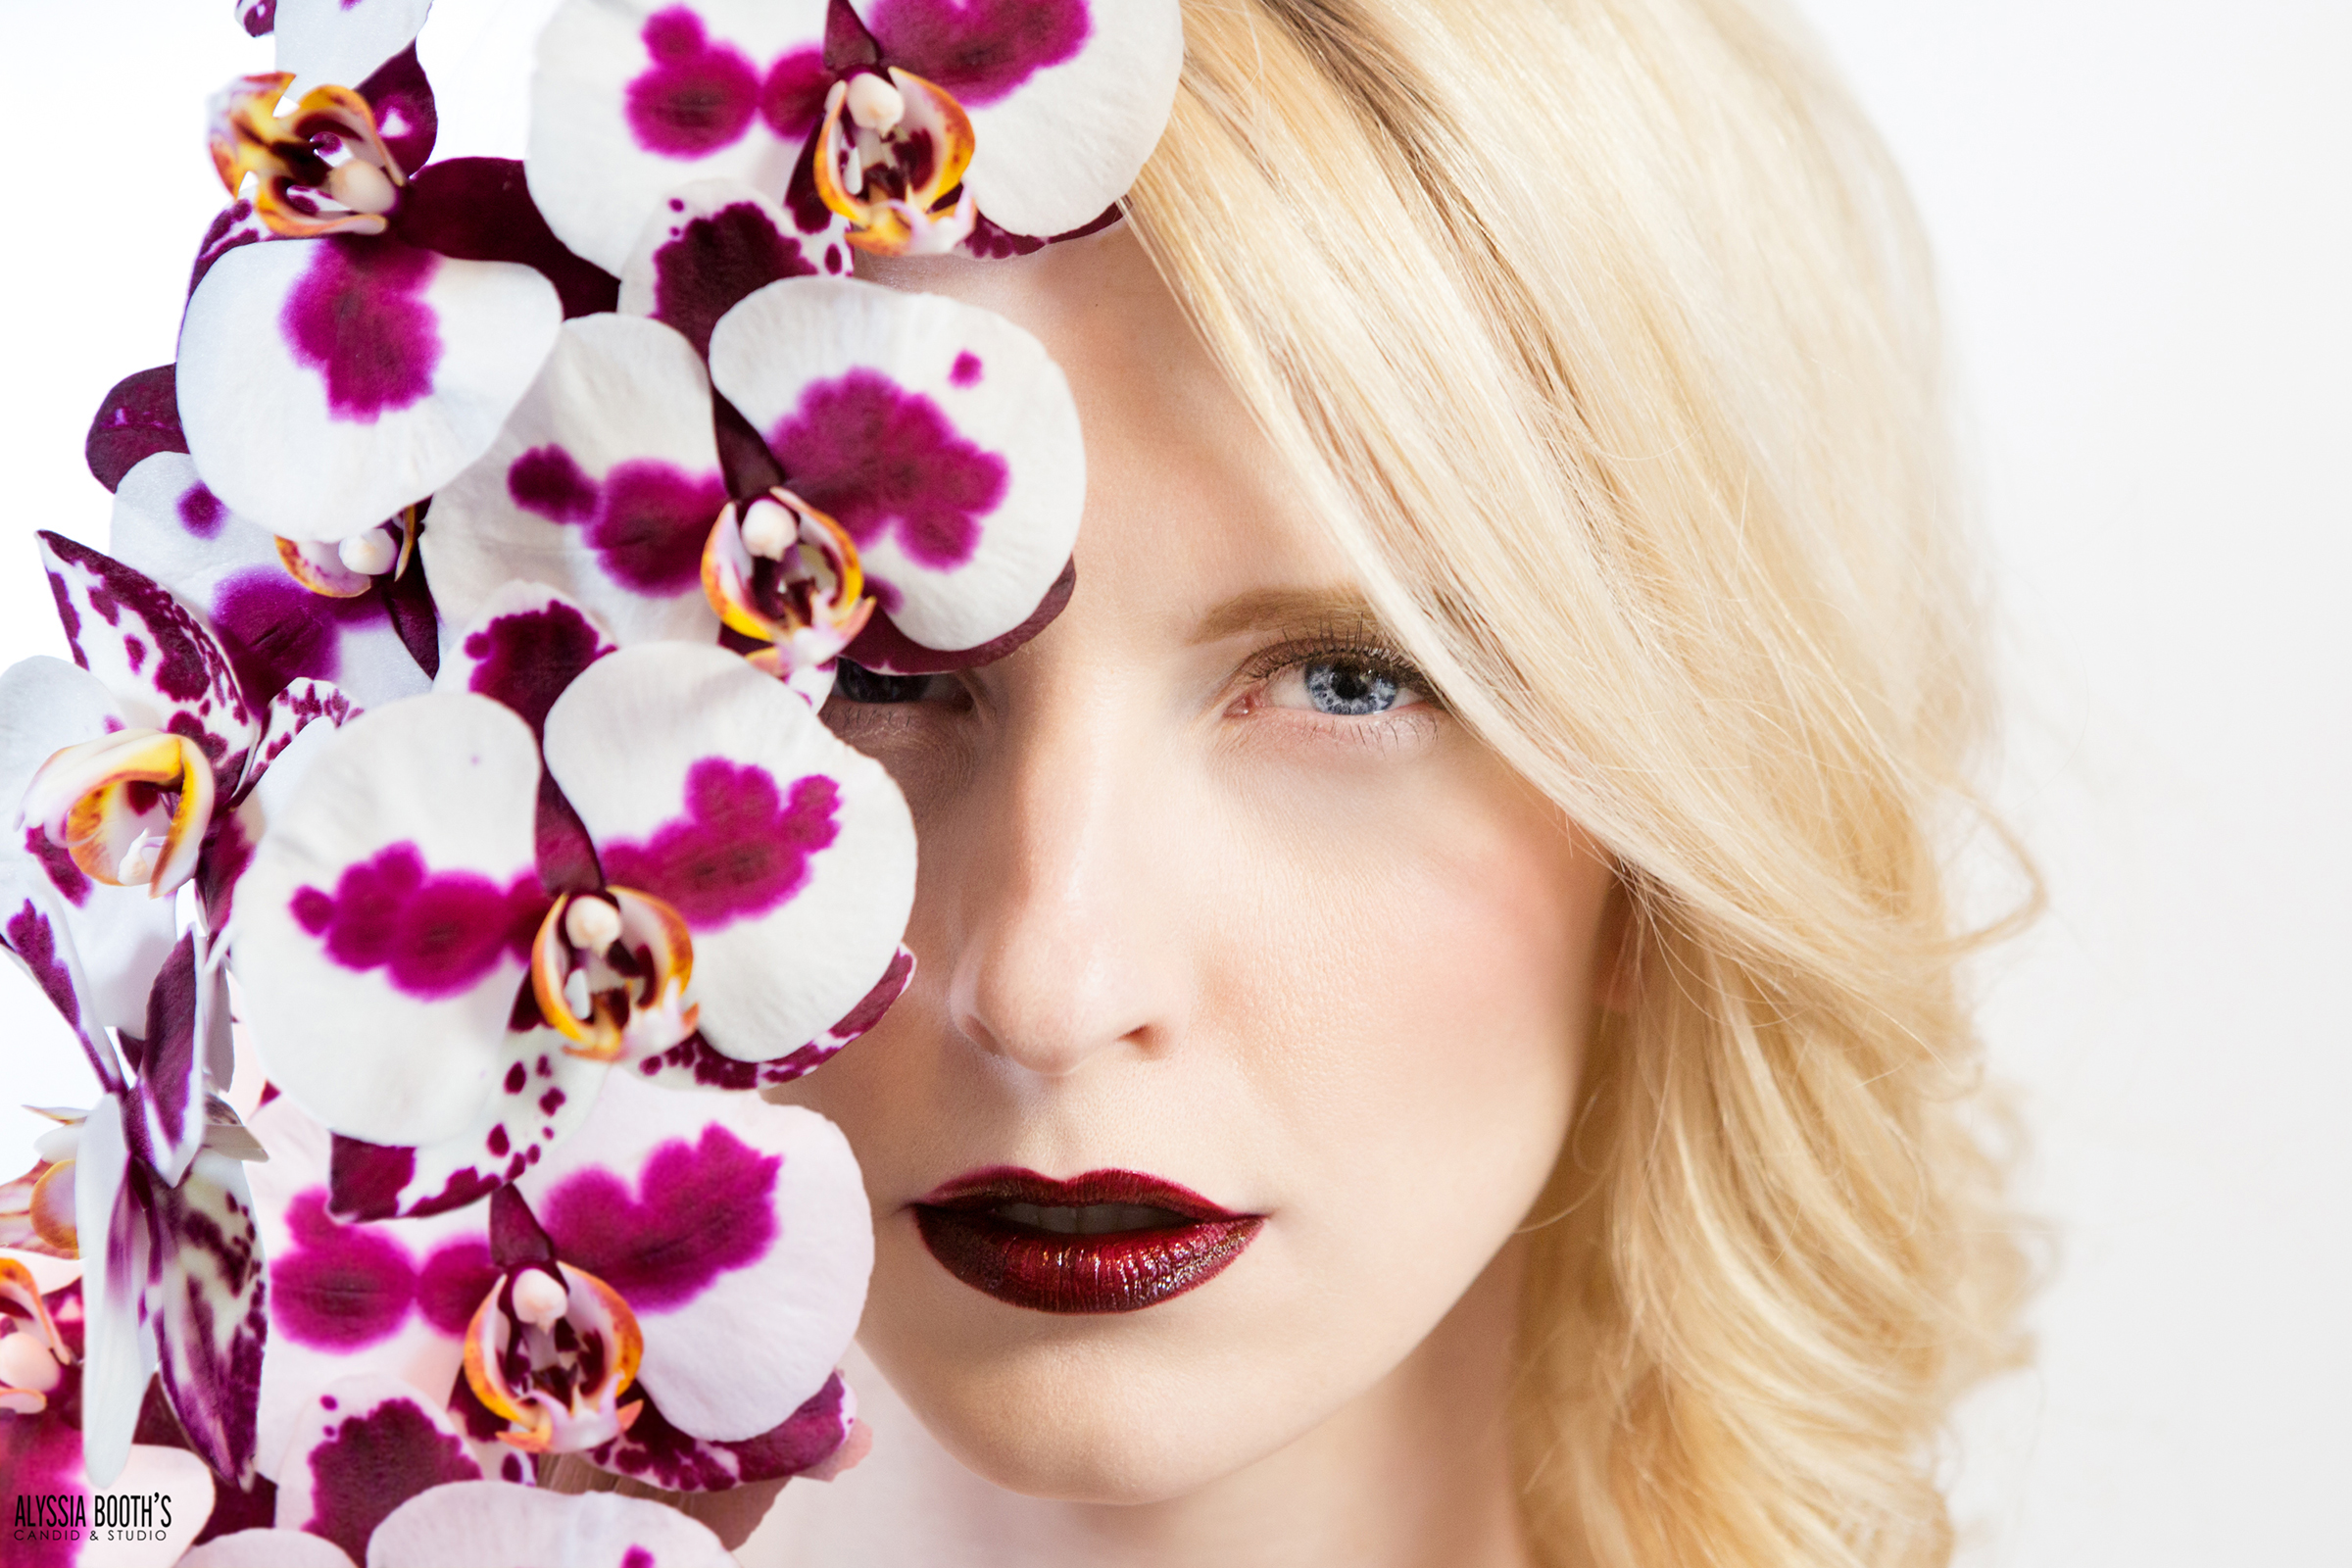 Makeup Test | Orchid Makeup | Maroon Red Lip | Dramatic Flowers Makeup | Lashes | Amy Lewis Makeup | Alyssia Booth's Candid & Studio | Test Shoot